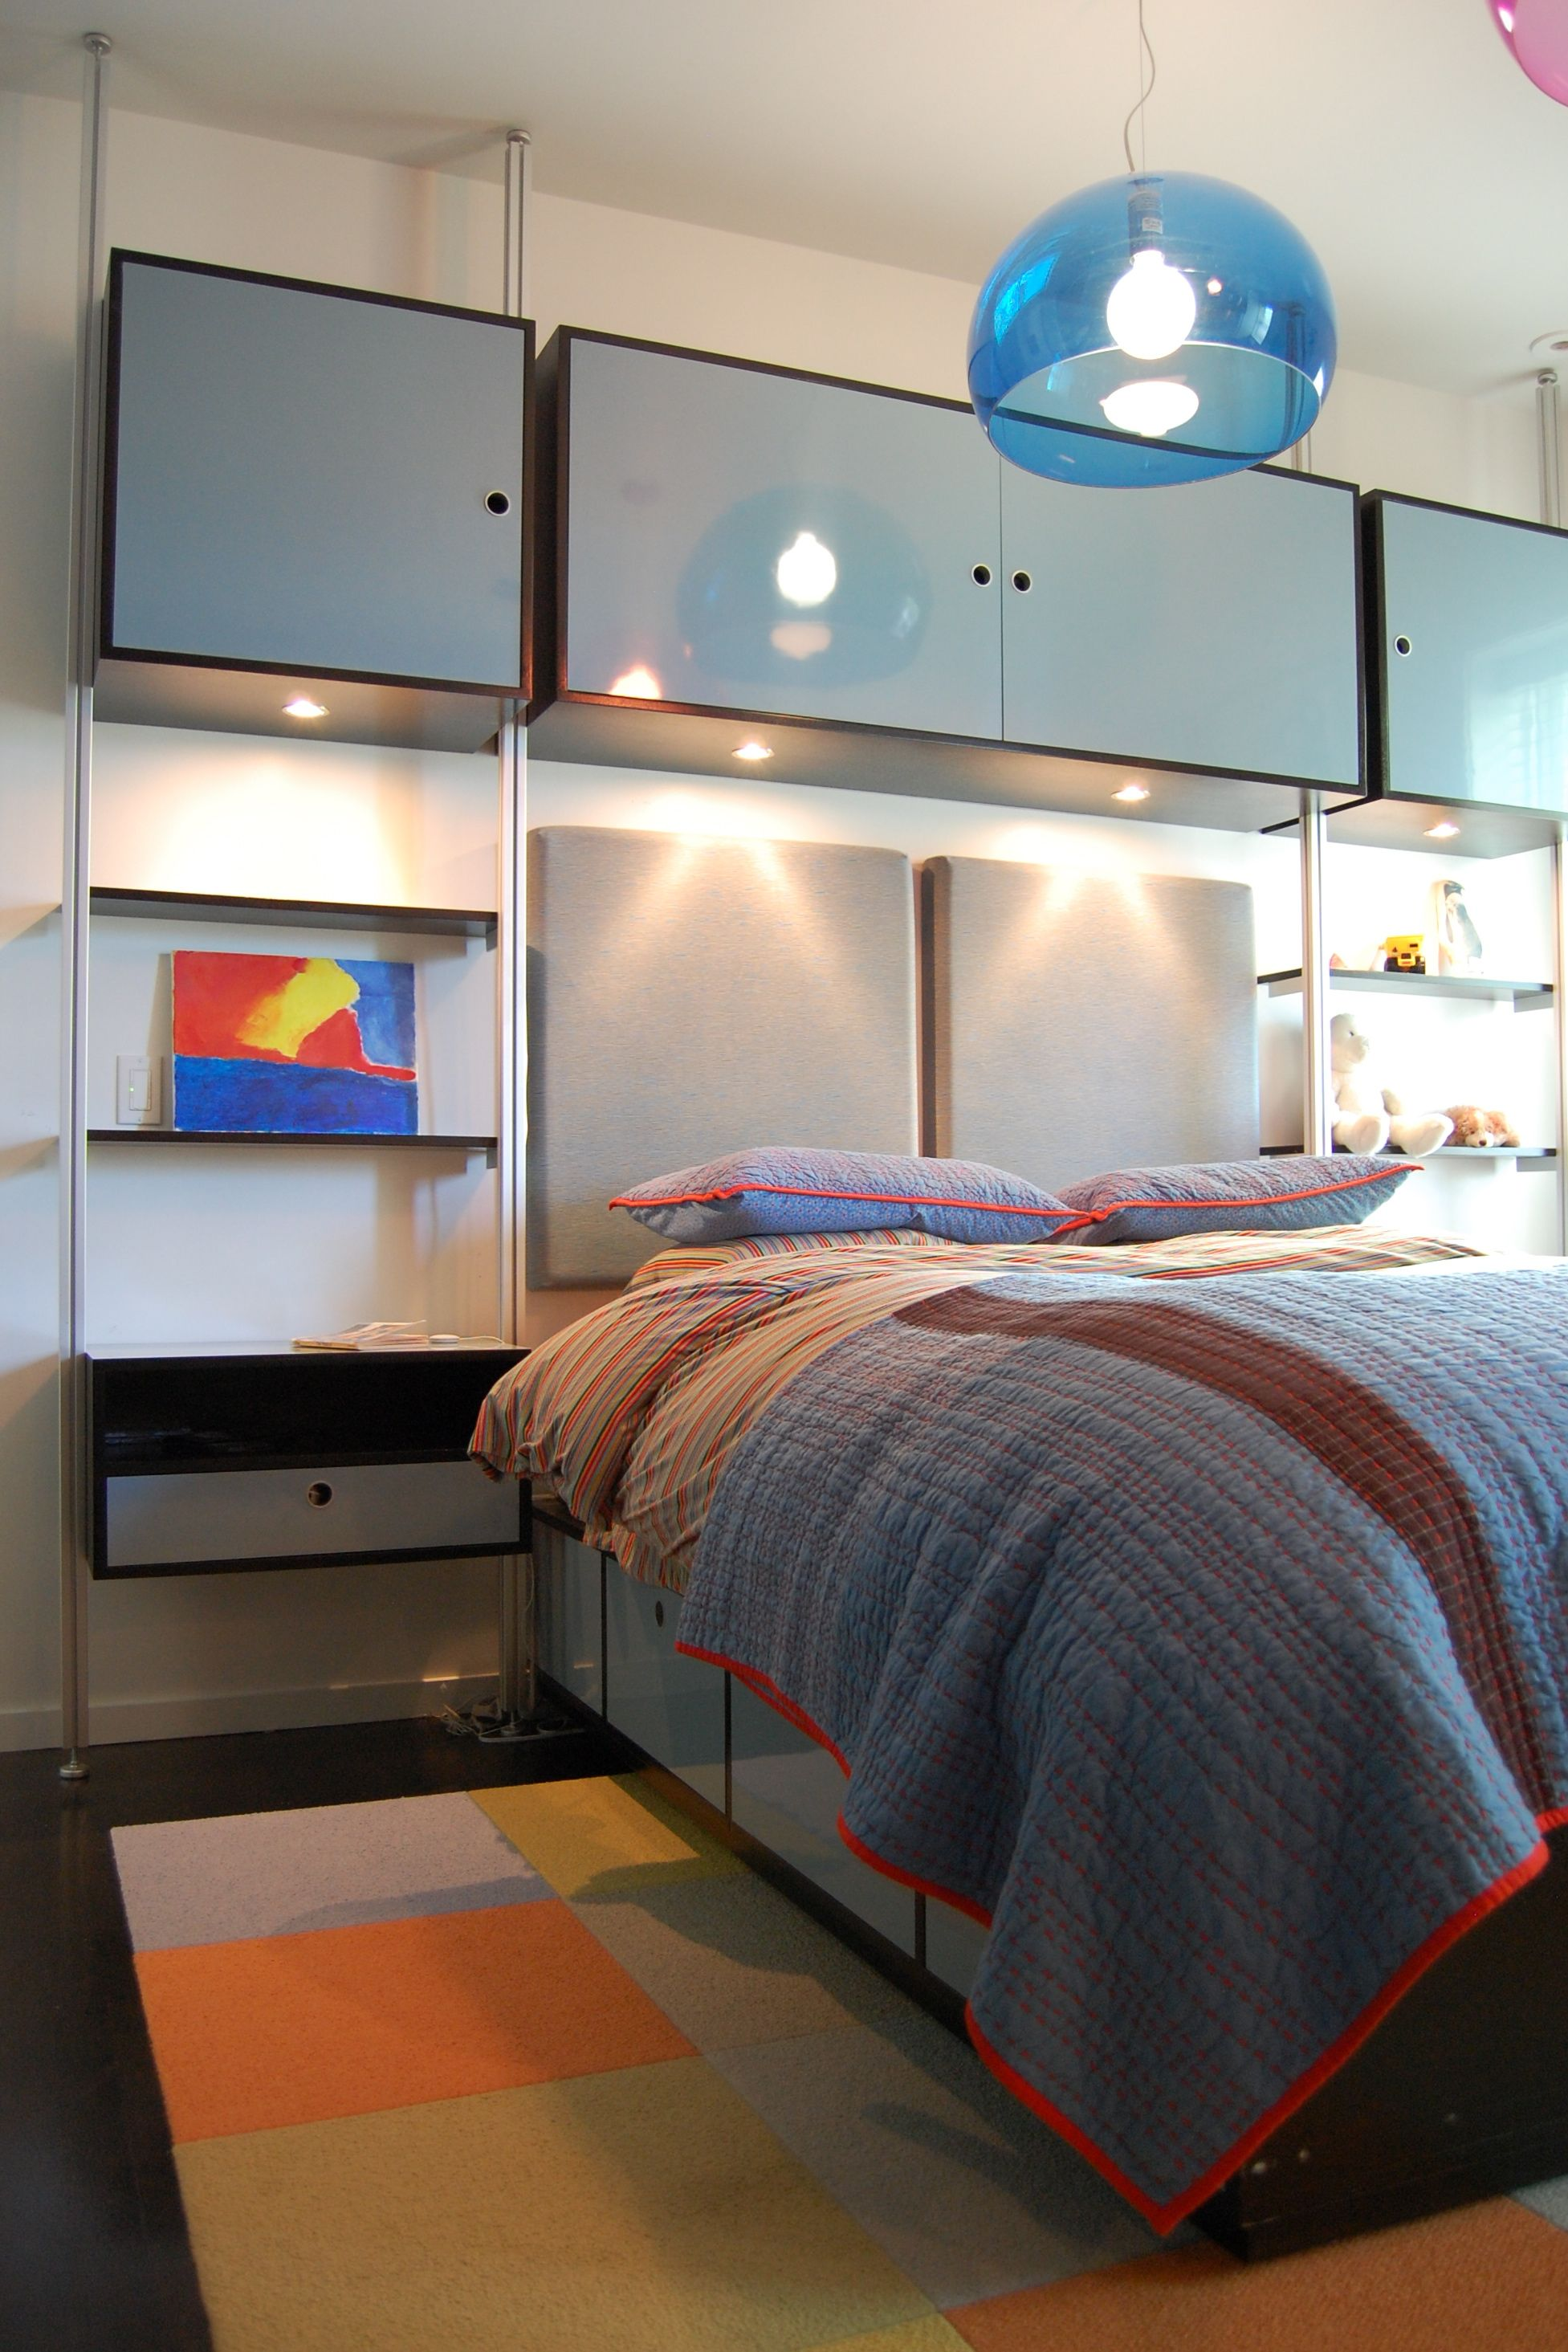 Modern 12 Year Old Boys Bedroom With Blue Bed and Storage Headboard Also  Pendant Lamp - Gallery Pictures of 12 Year Old Bedroom Ideas